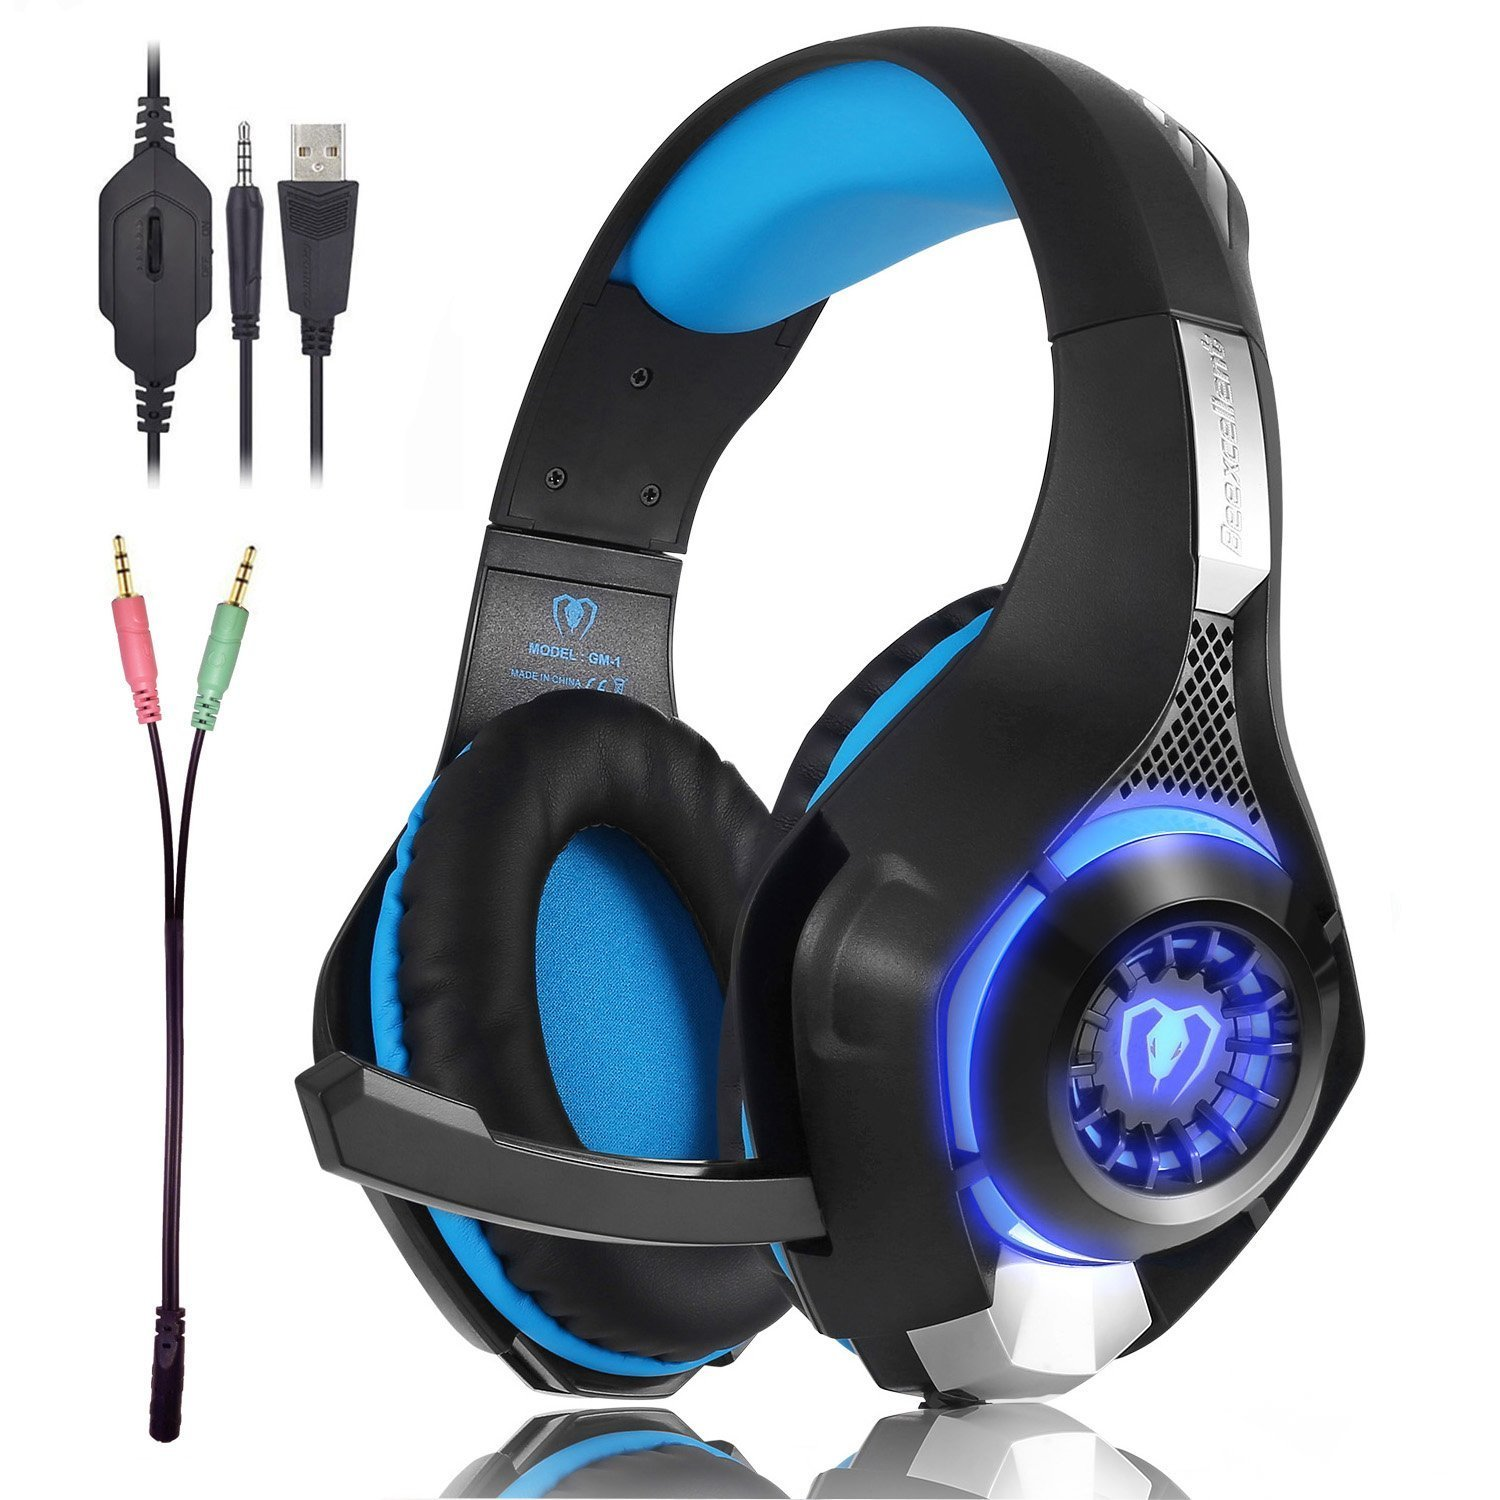 Gaming Headset for PS4 Xbox one 3.5mm Stereo Headset with Microphone LED Light Noise Reduction and Volume Control product image